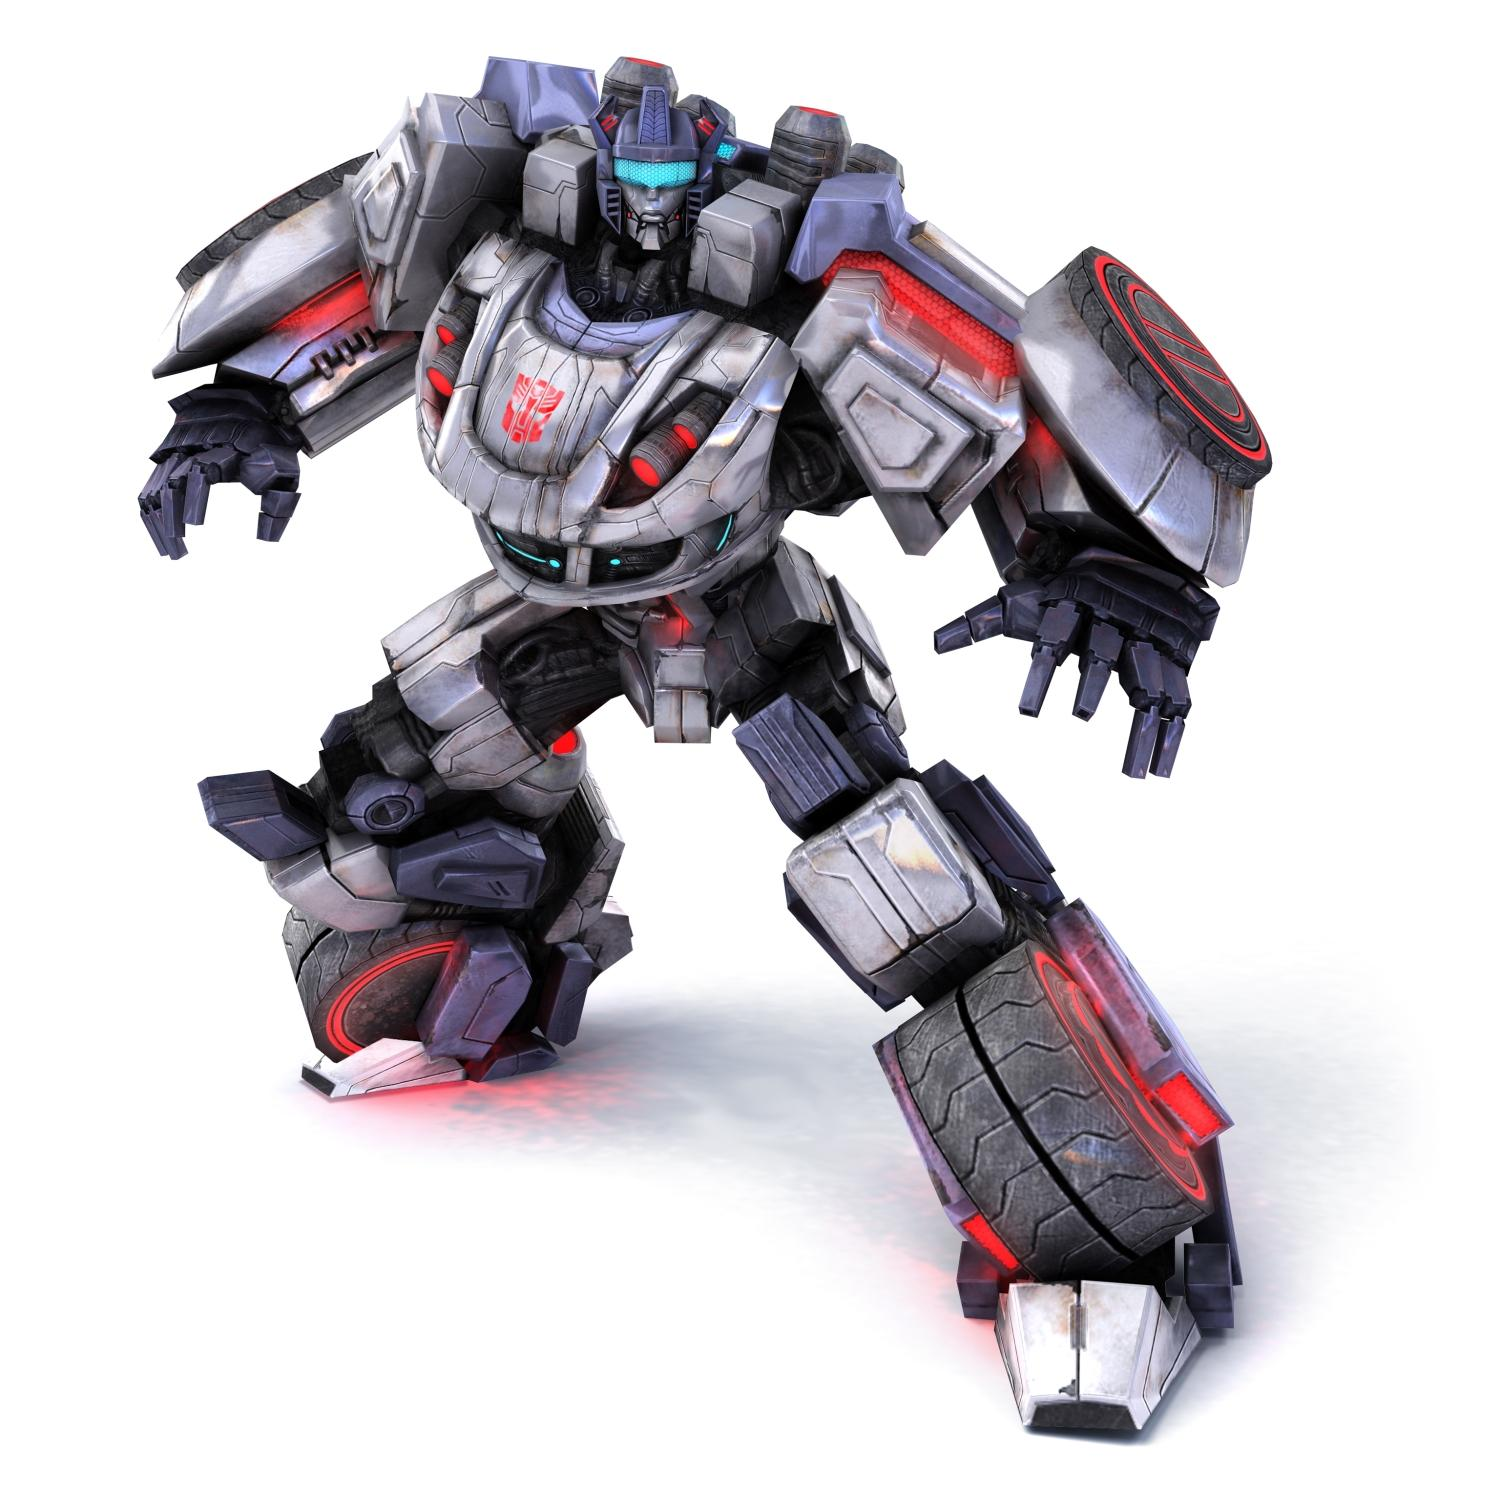 Transformers War For Cybertron Jazz as a Best-Buy Exclusive character